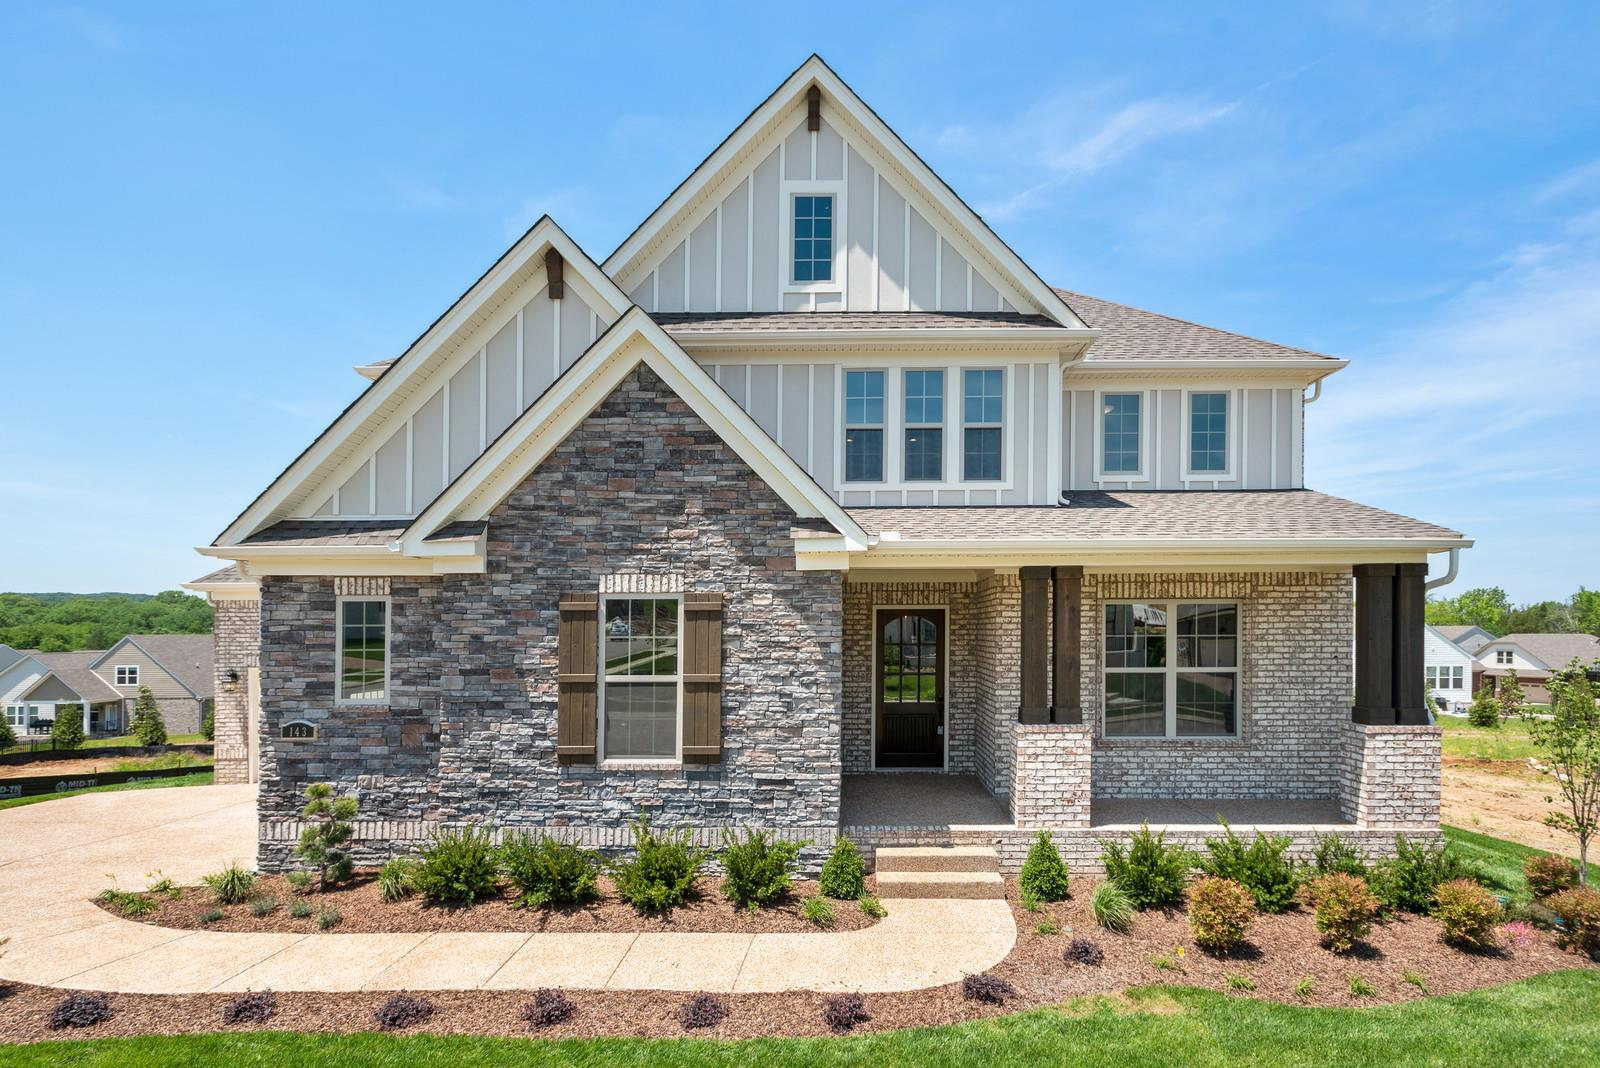 143 Telfair Lane #10 37135 - One of Nolensville Homes for Sale